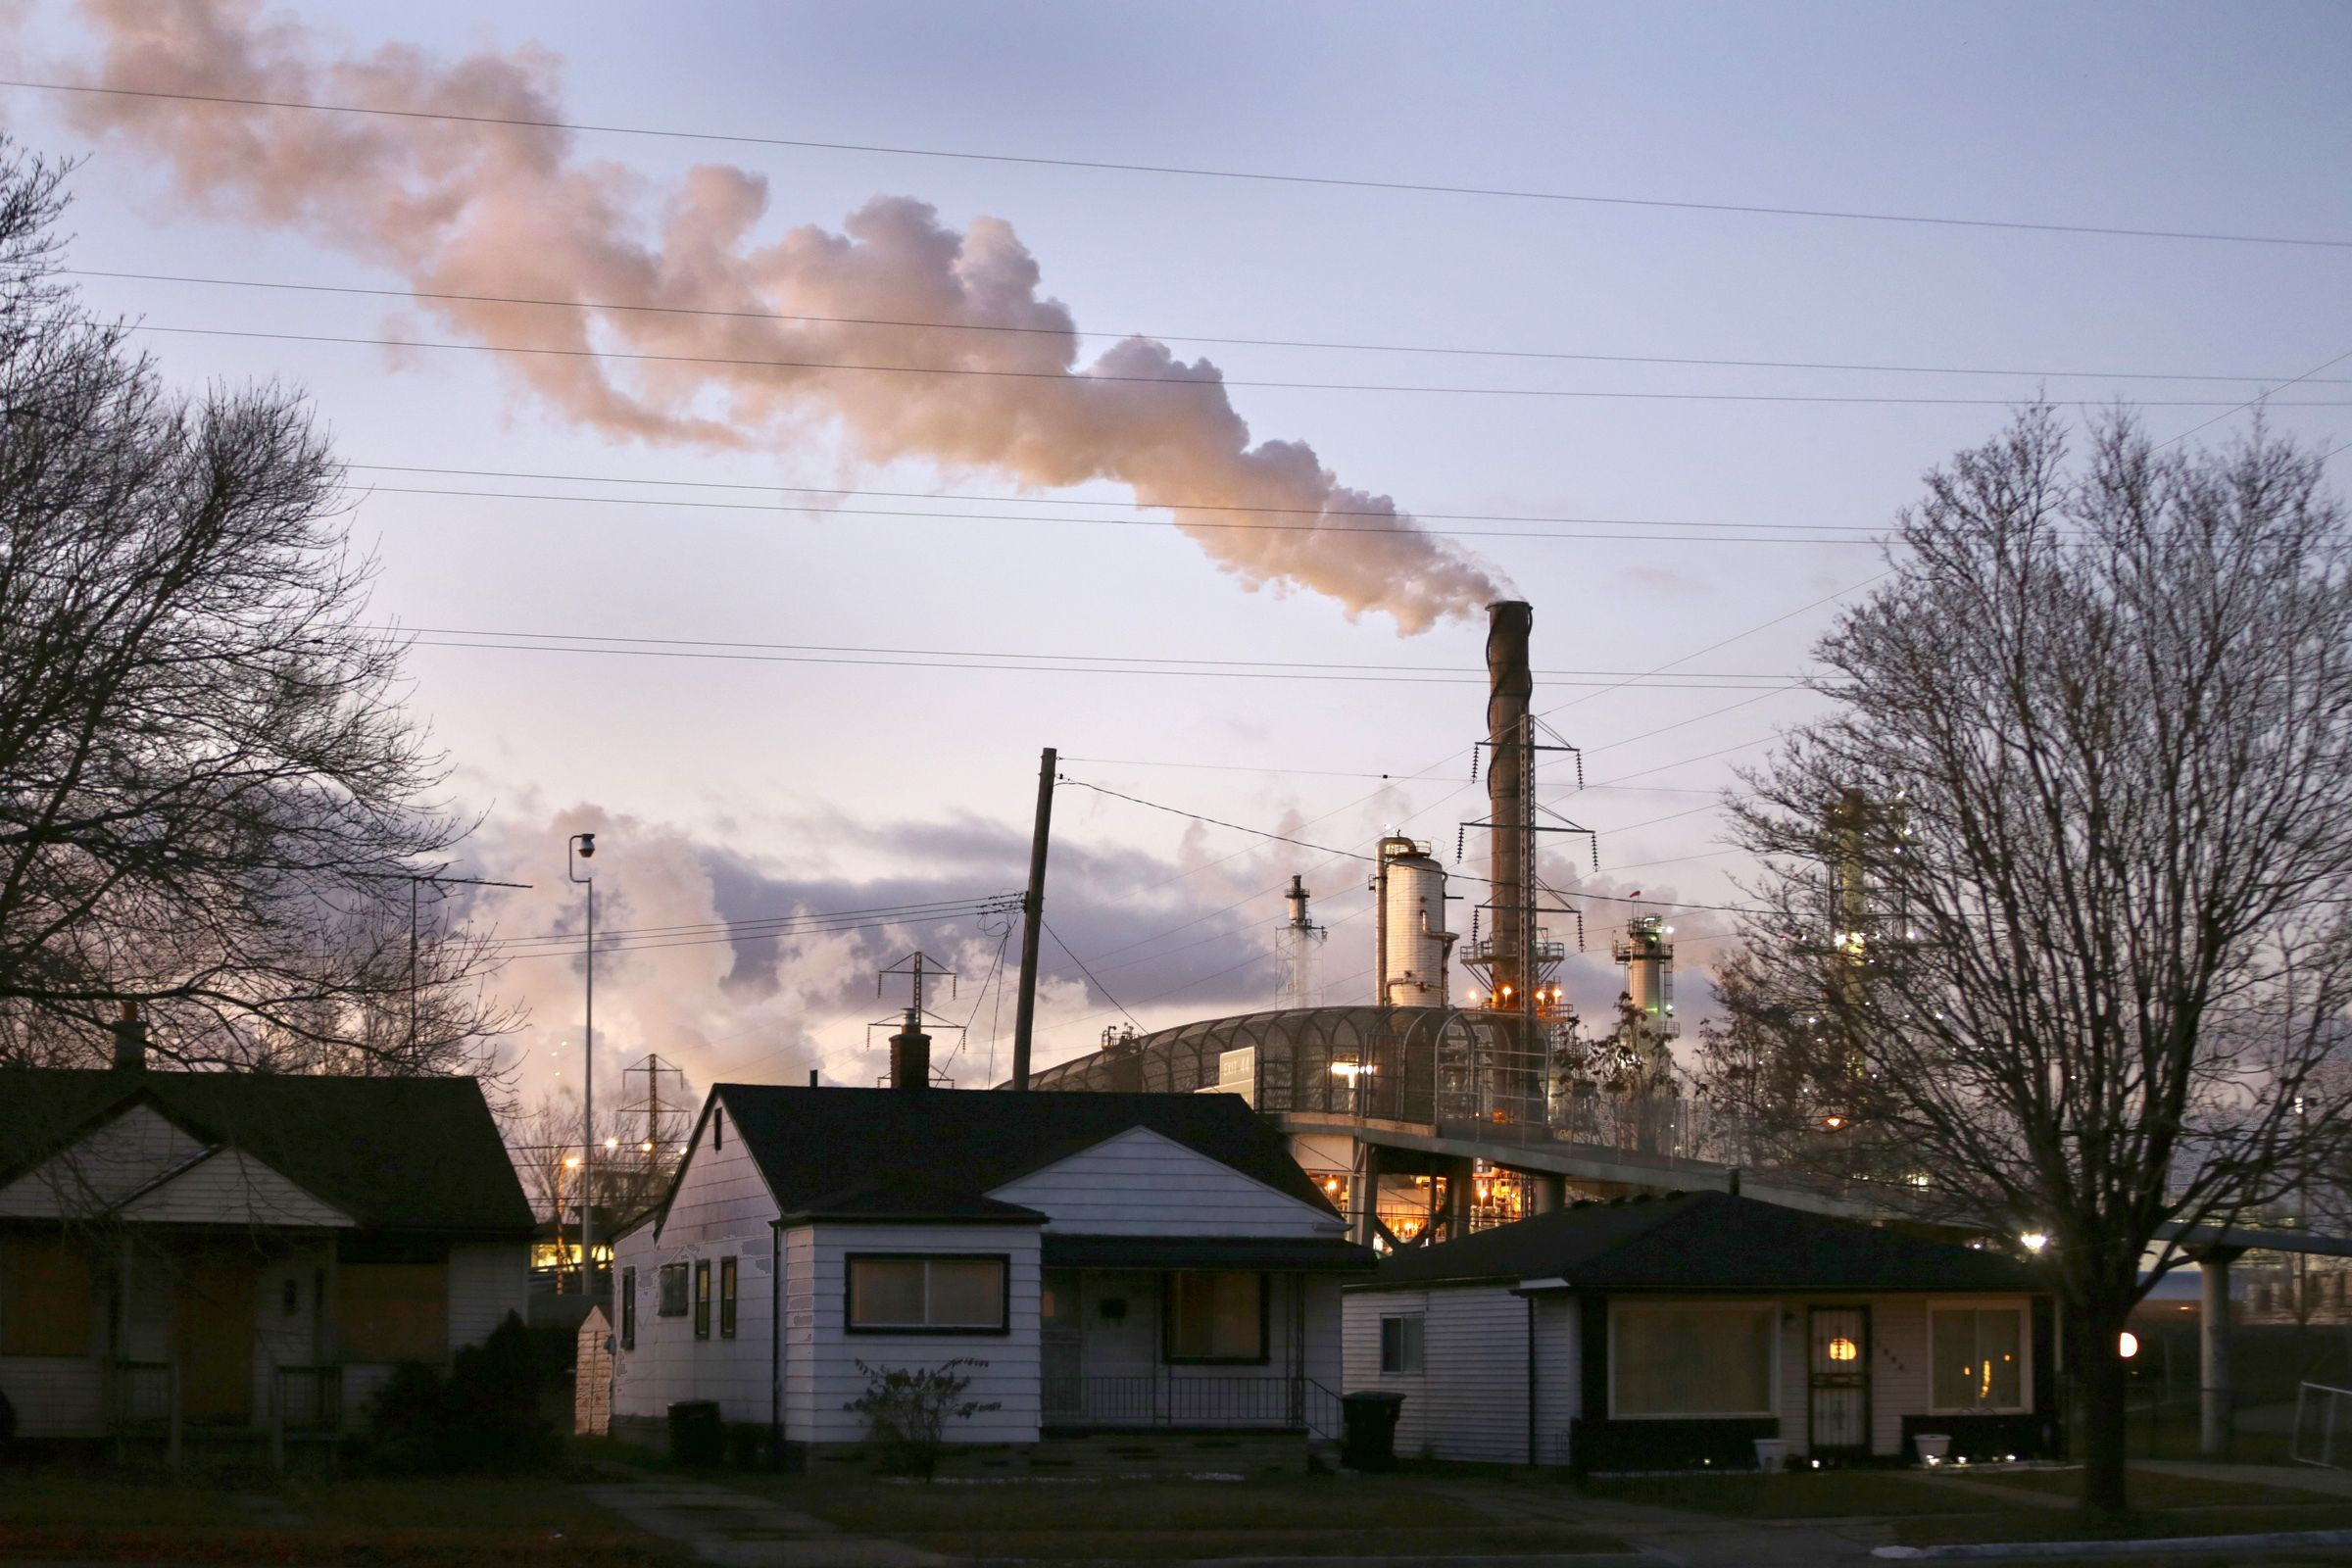 The Marathon Detroit Refinery is a frequent source of complaints from residential neighbors concerned about air quality.